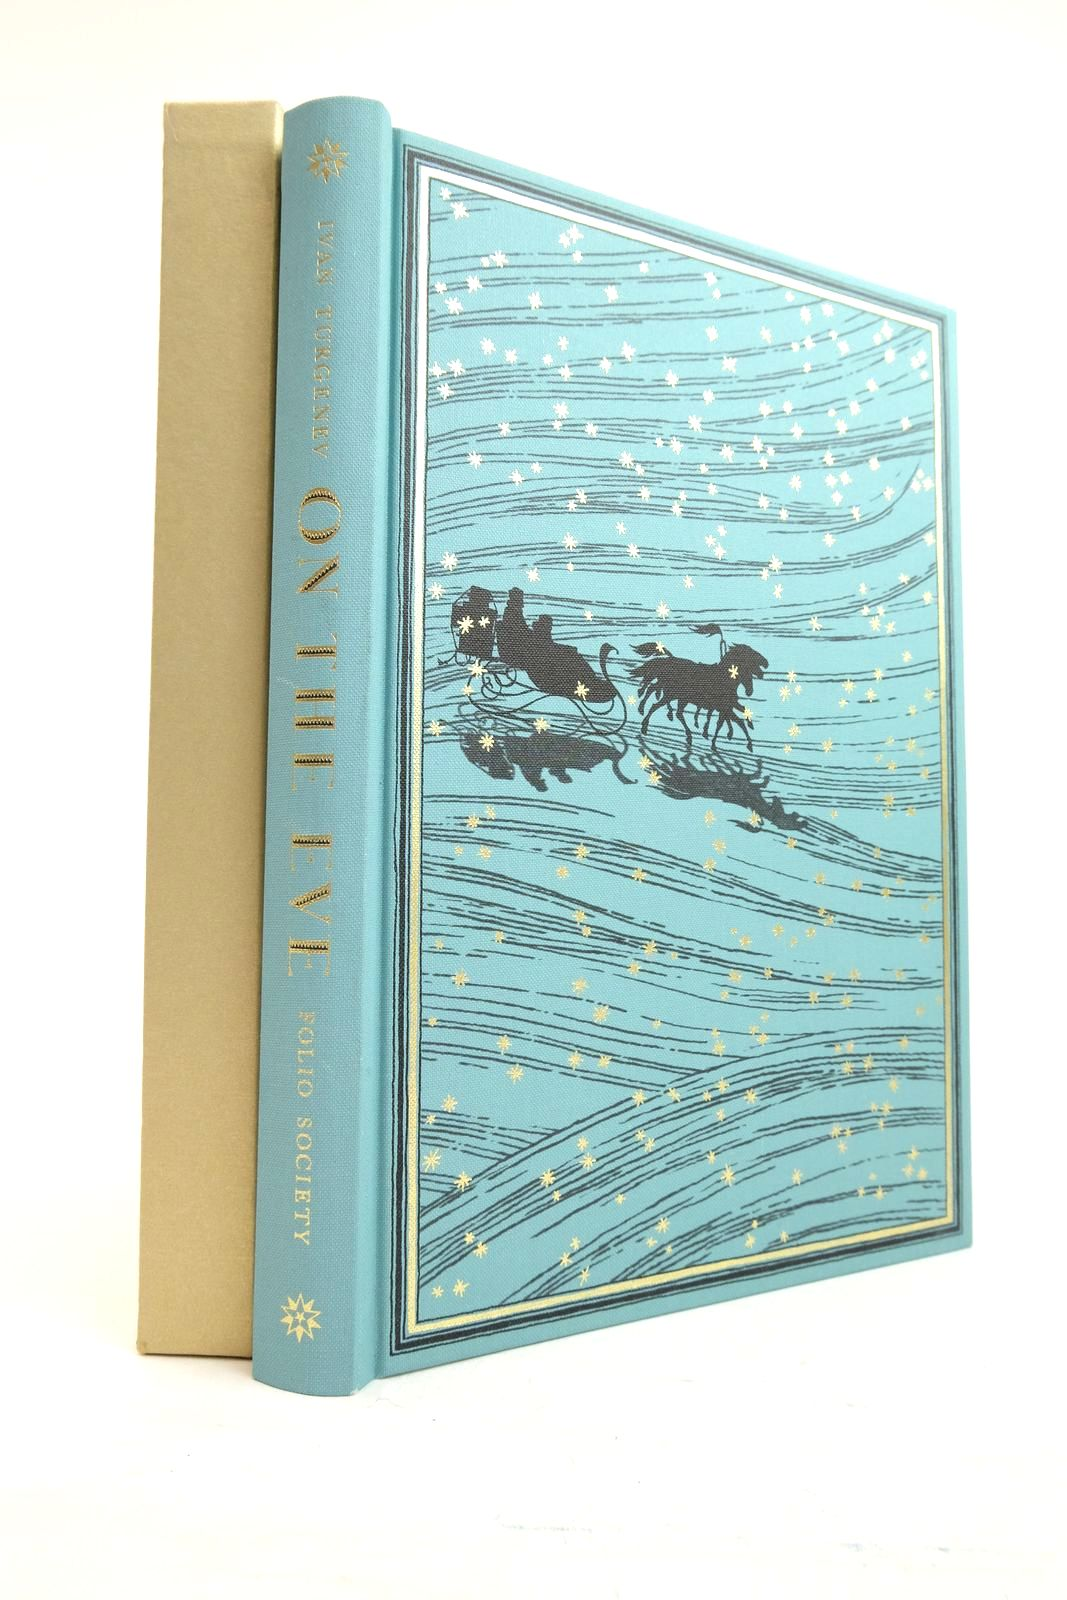 Photo of ON THE EVE written by Turgenev, Ivan Gardiner, Gilbert Matar, Hisham illustrated by Nassef, Lauren published by Folio Society (STOCK CODE: 2134554)  for sale by Stella & Rose's Books